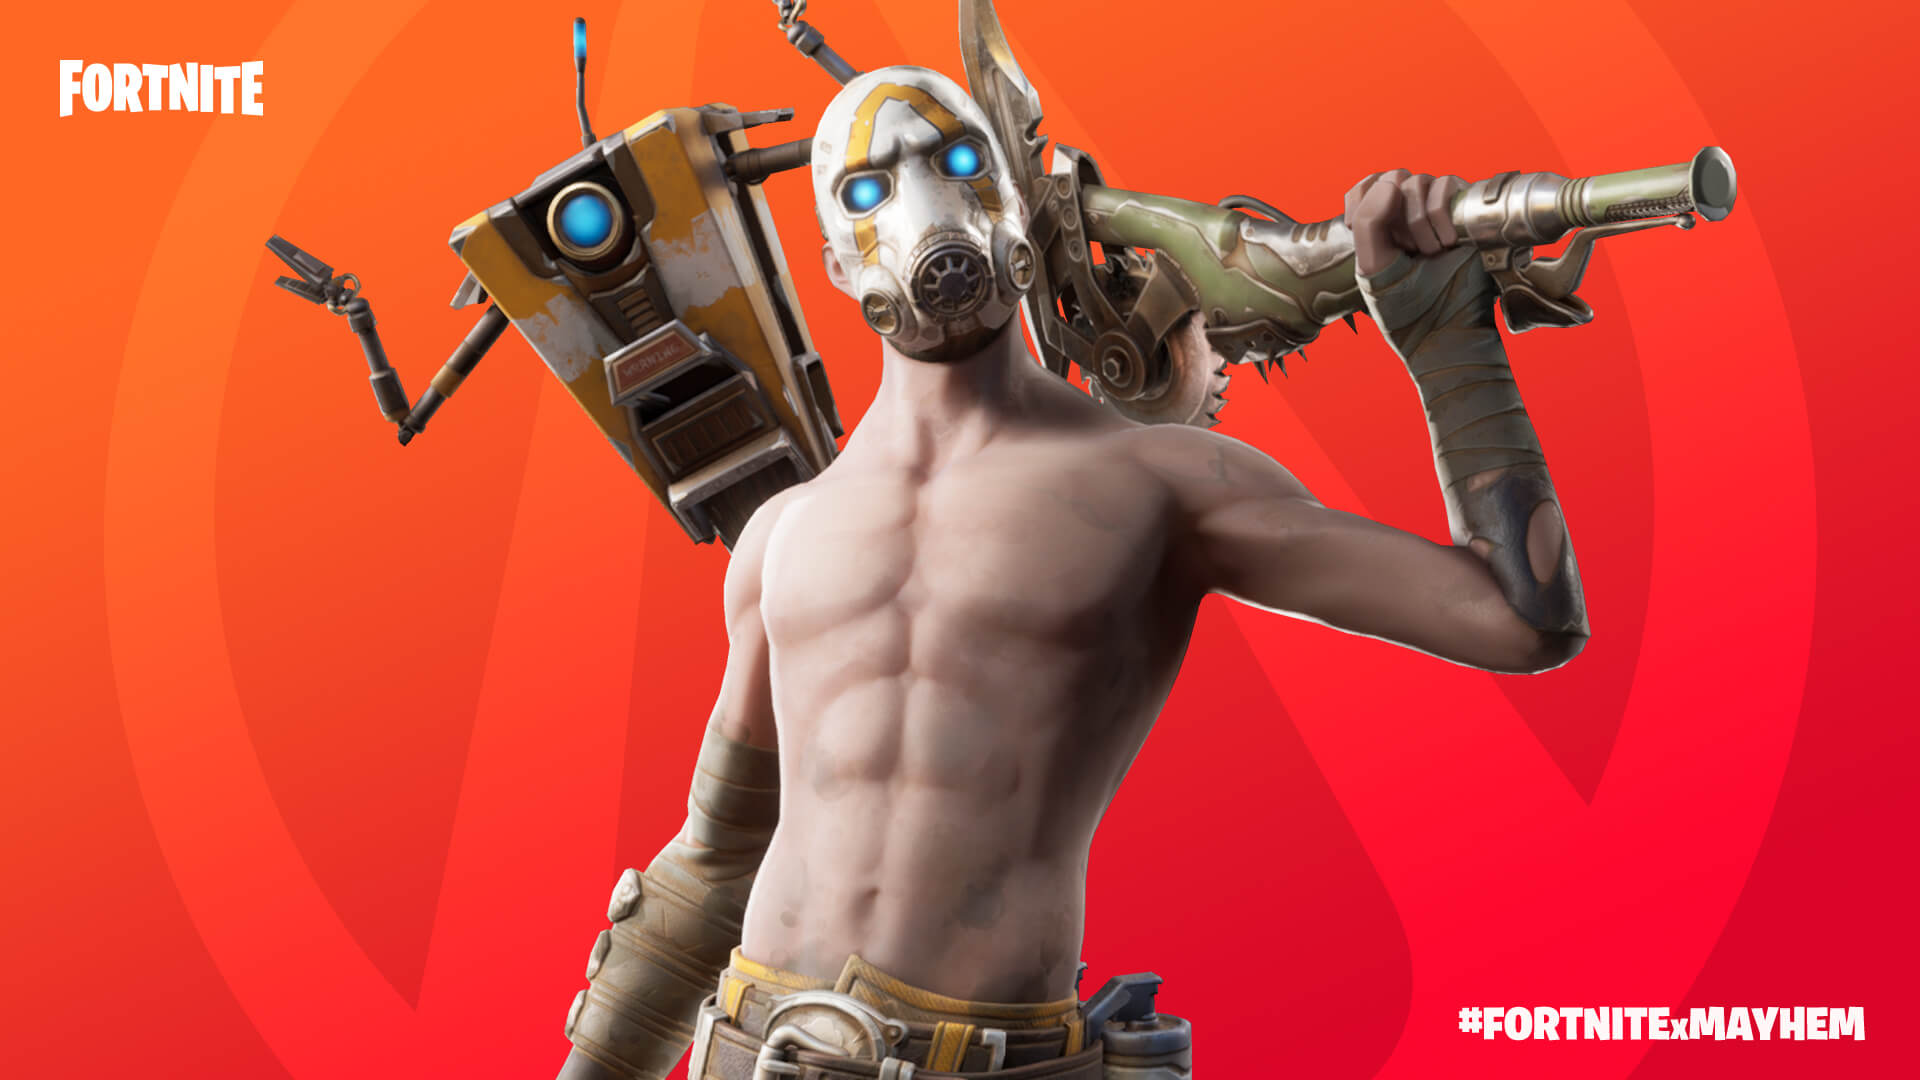 Fortnite updated to Version 10.20, Borderlands crossover announced